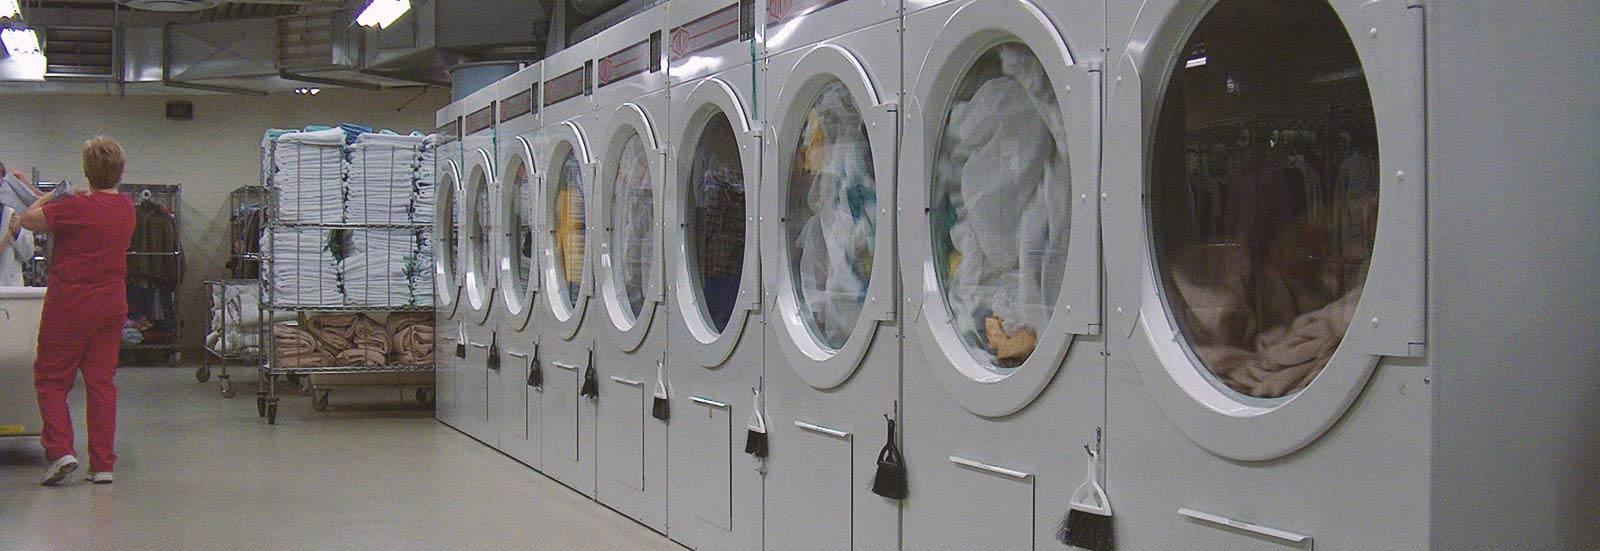 Dalex - leader in Fabricare & Laundry Equipment